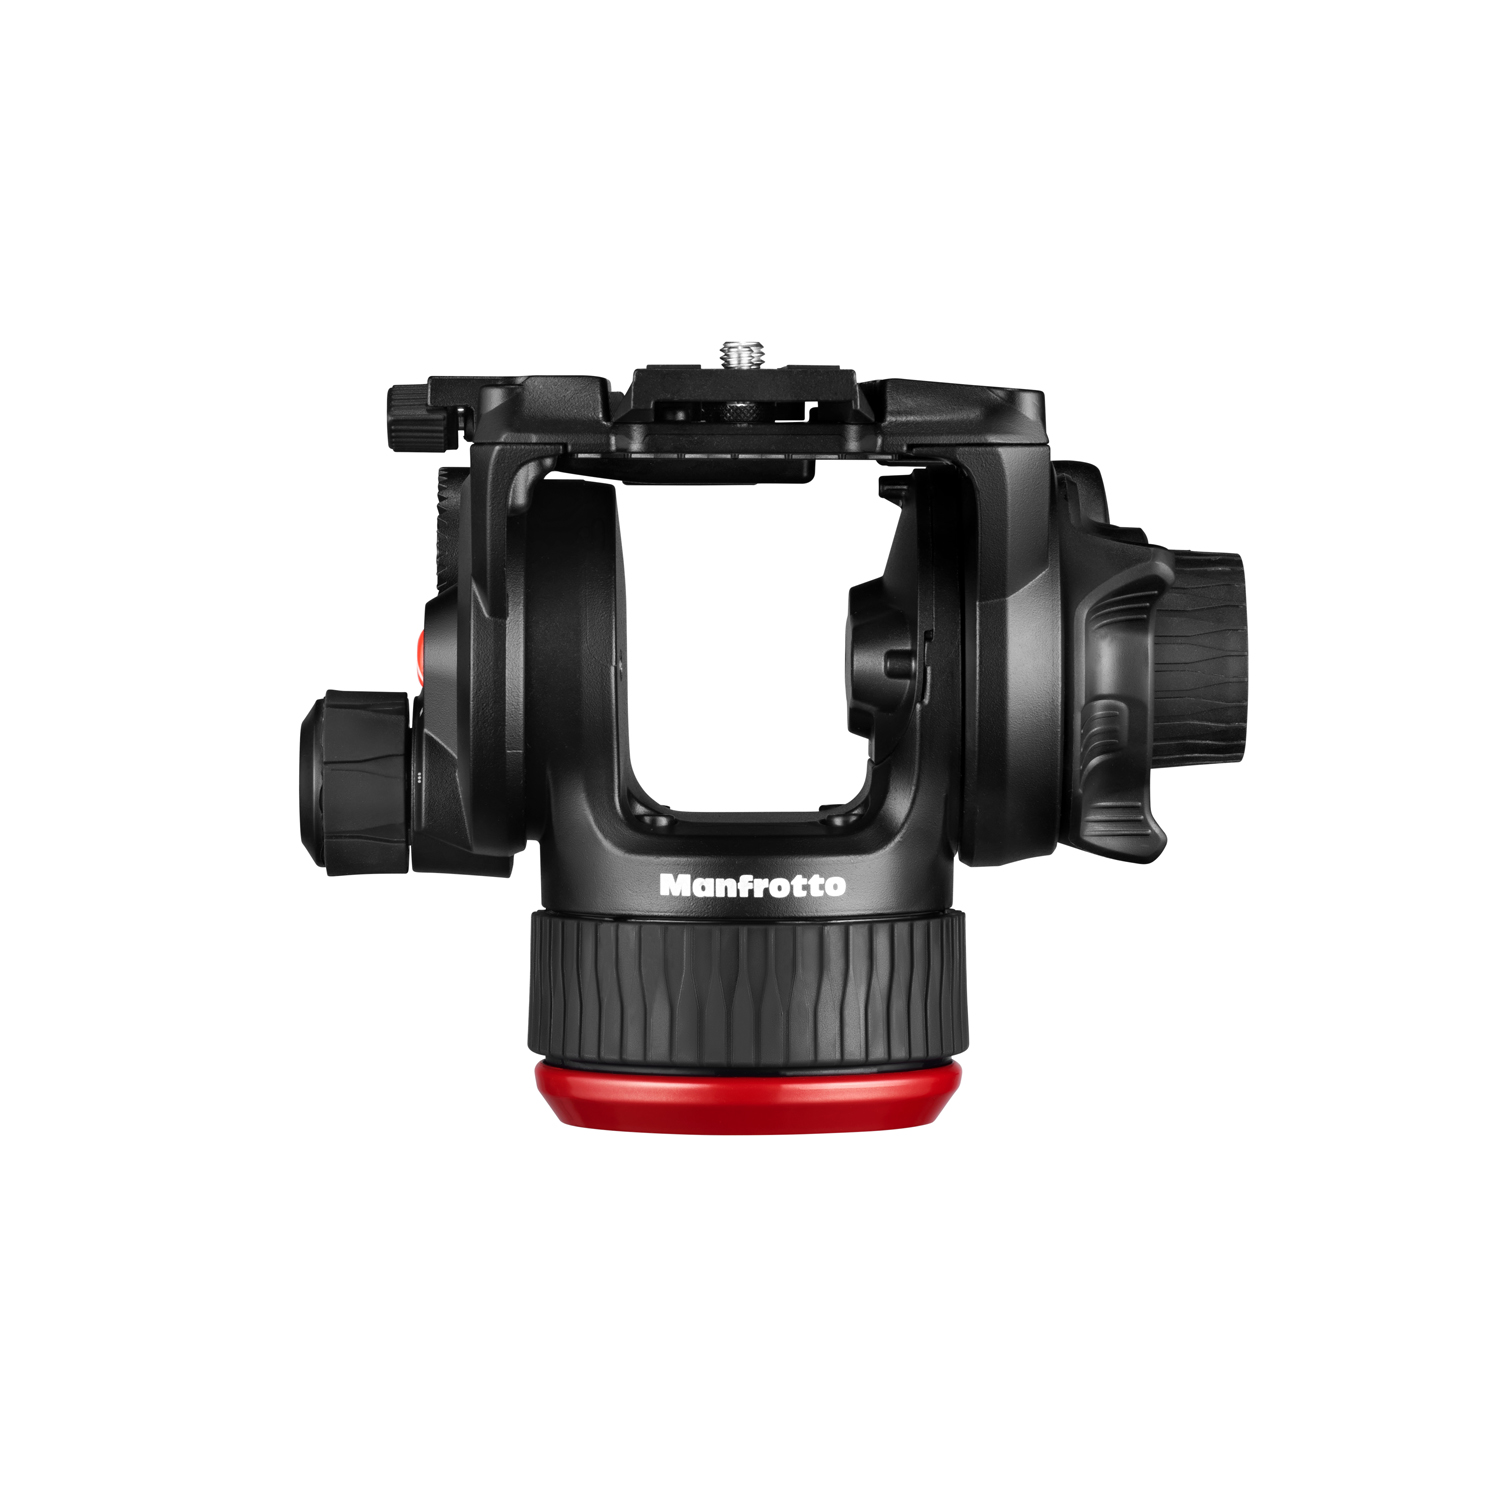 Manfrotto 504x videopea